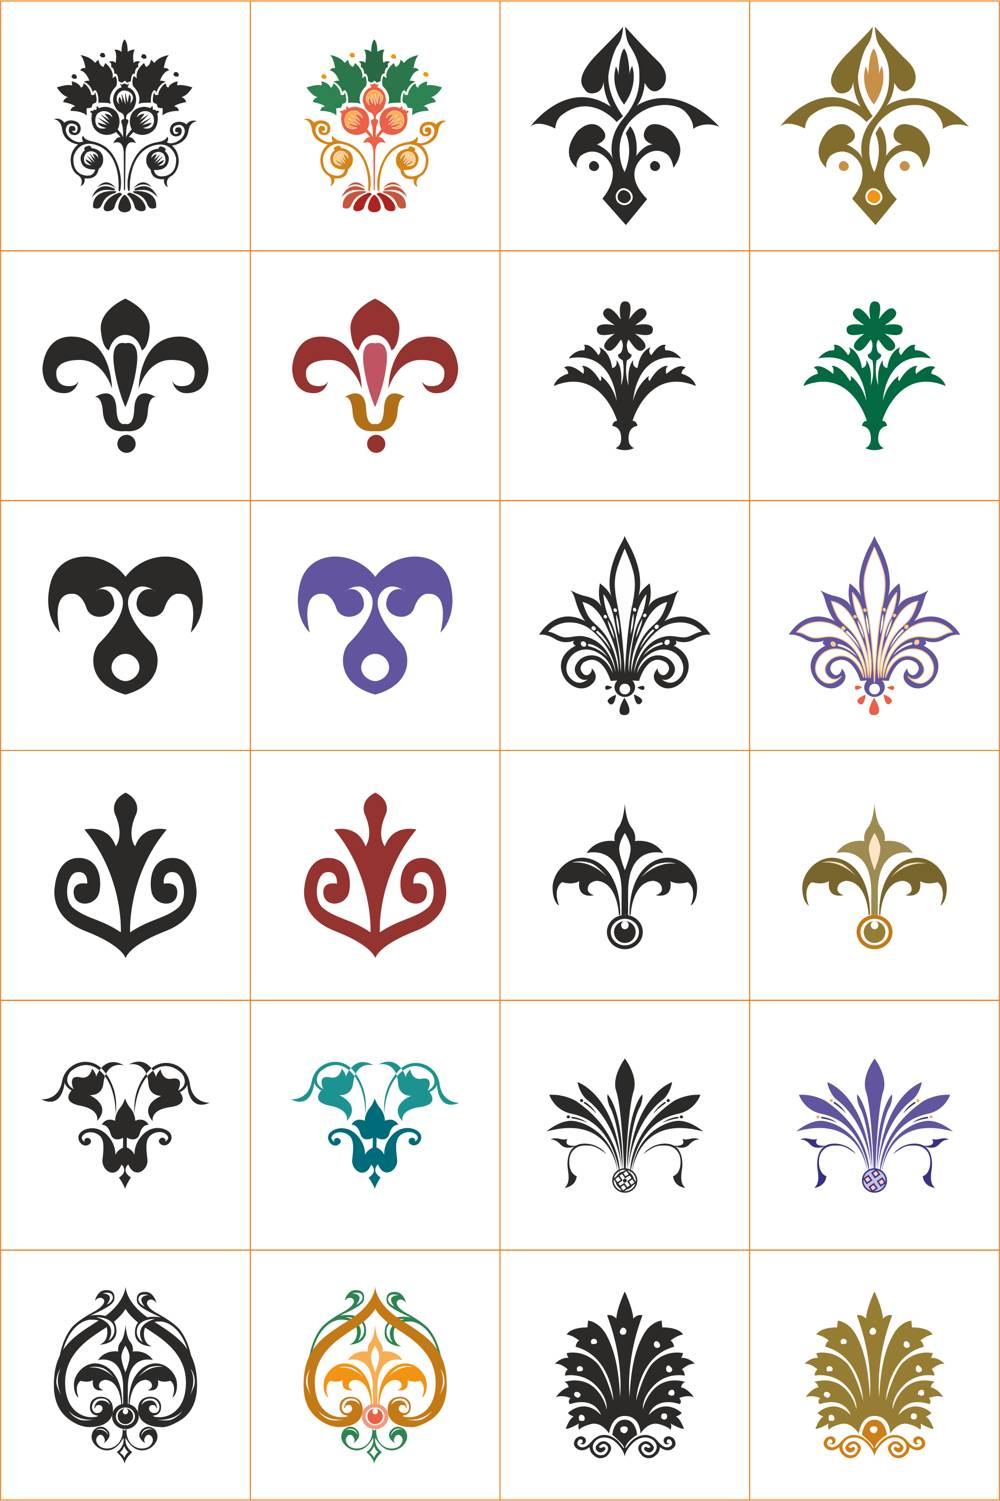 Floral Vector Ornaments Set Free Vector